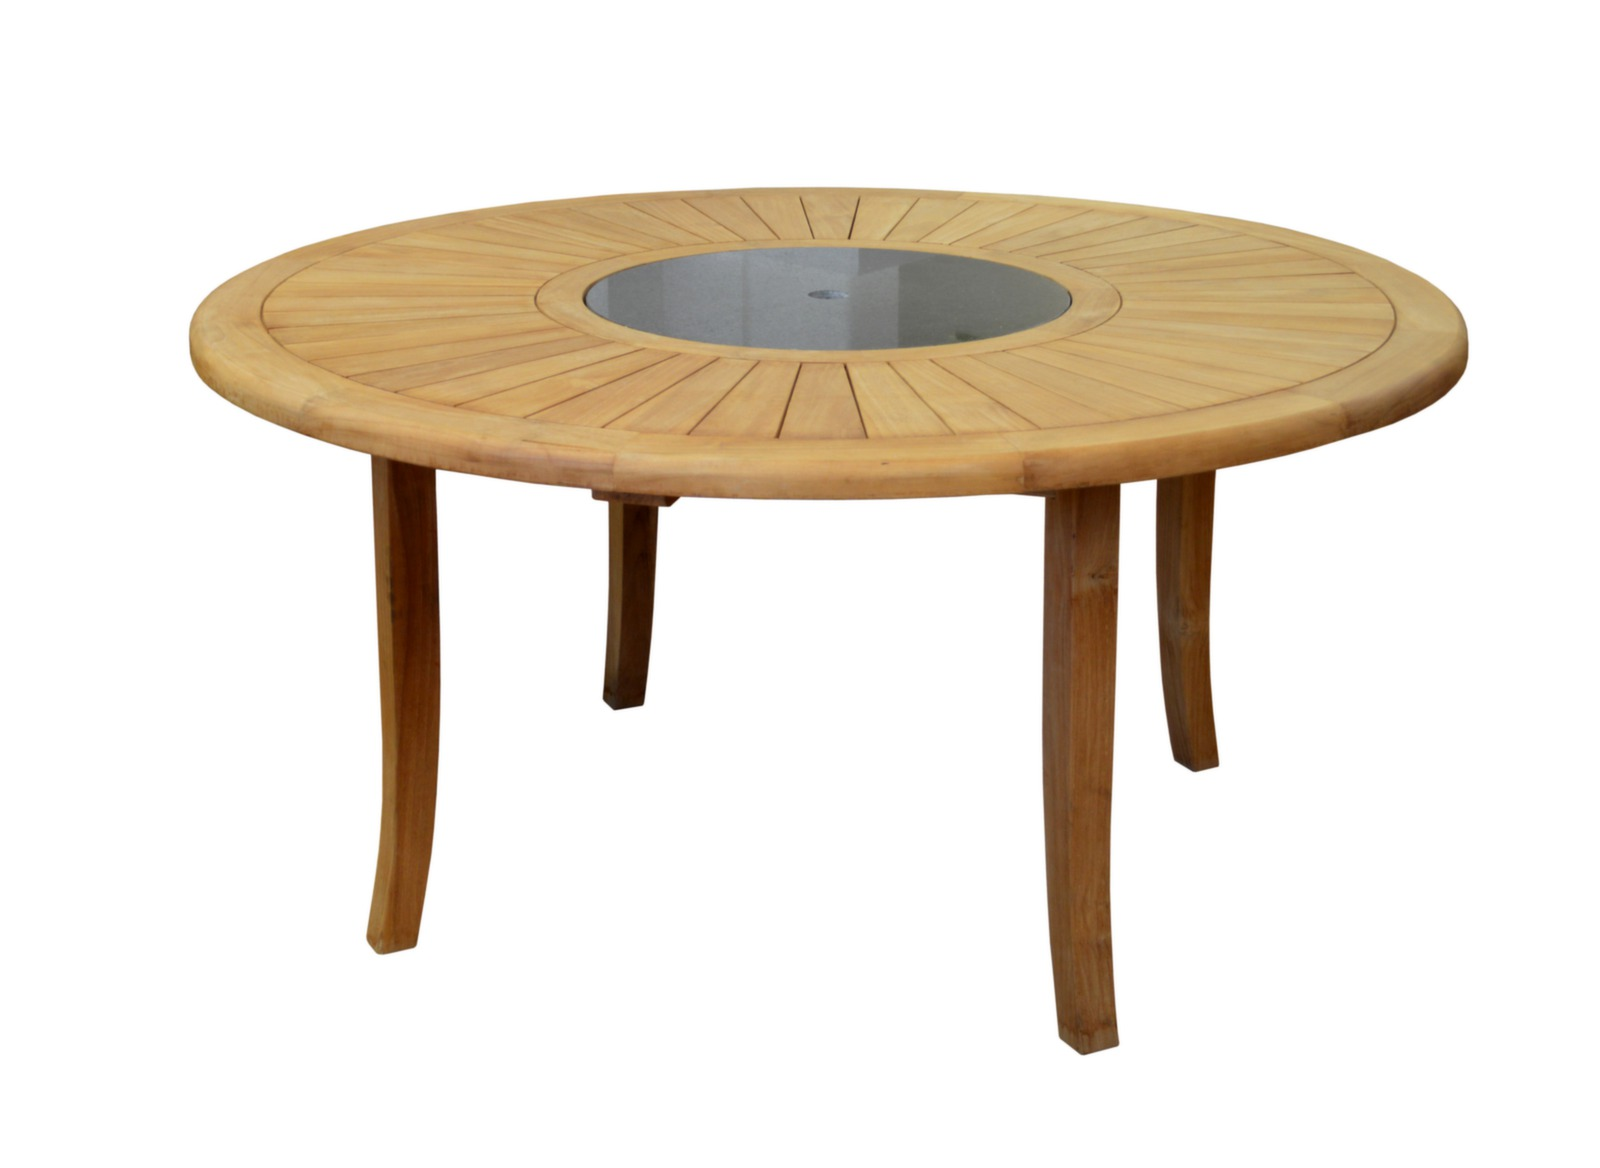 Beautiful table de jardin ronde en bois avec plateau for Plateau table